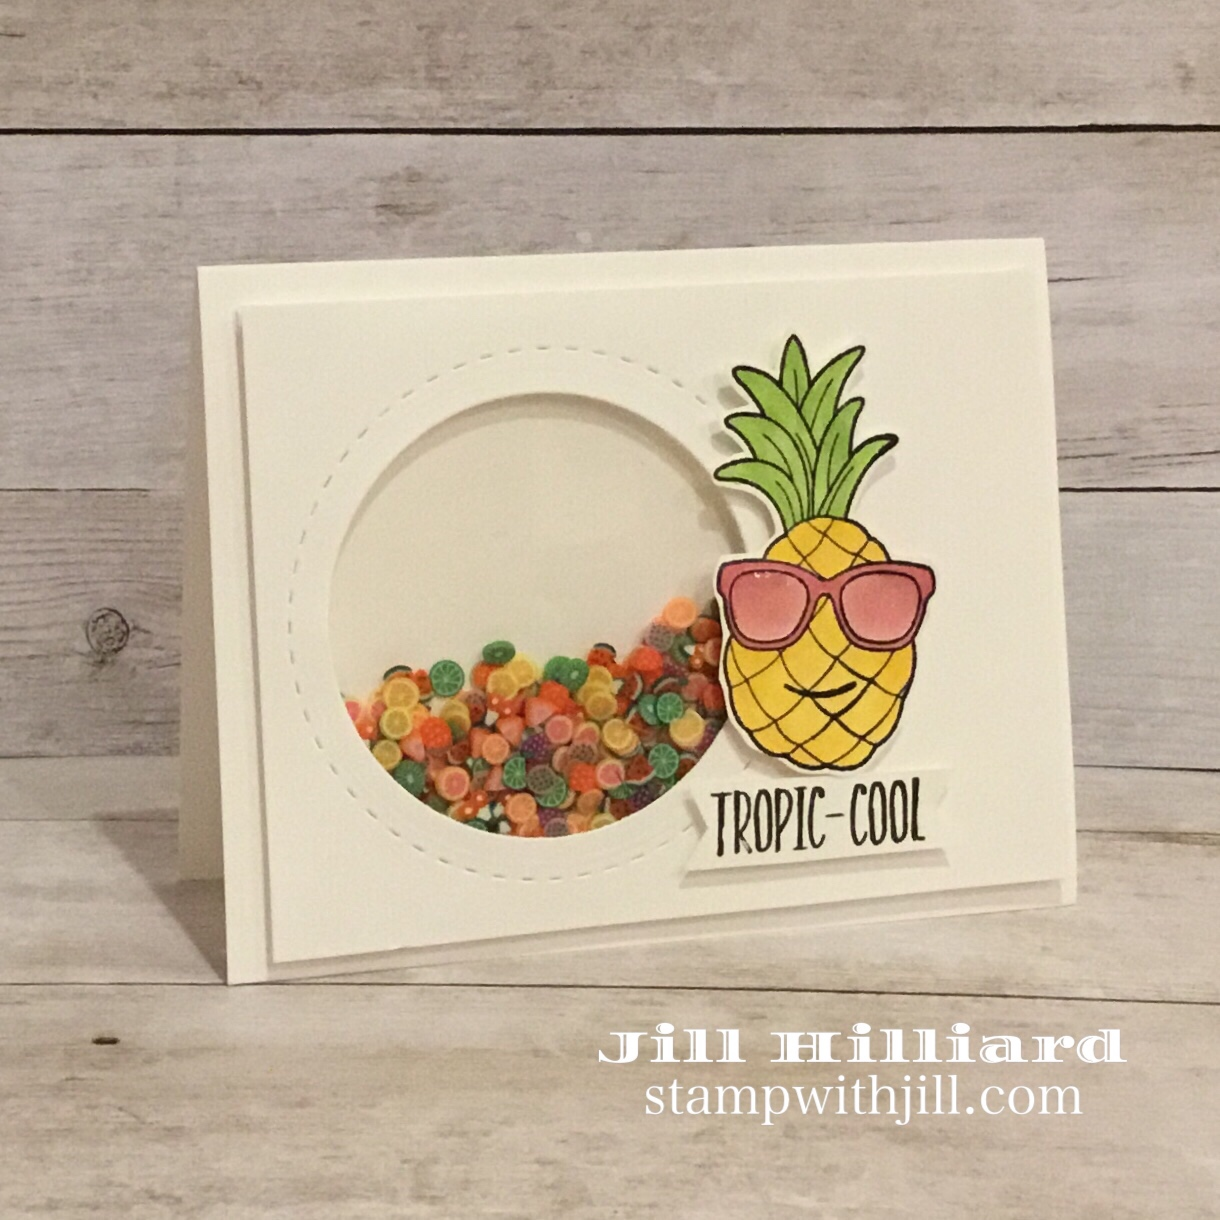 Tropic-Cool shaker card, slice-fetti